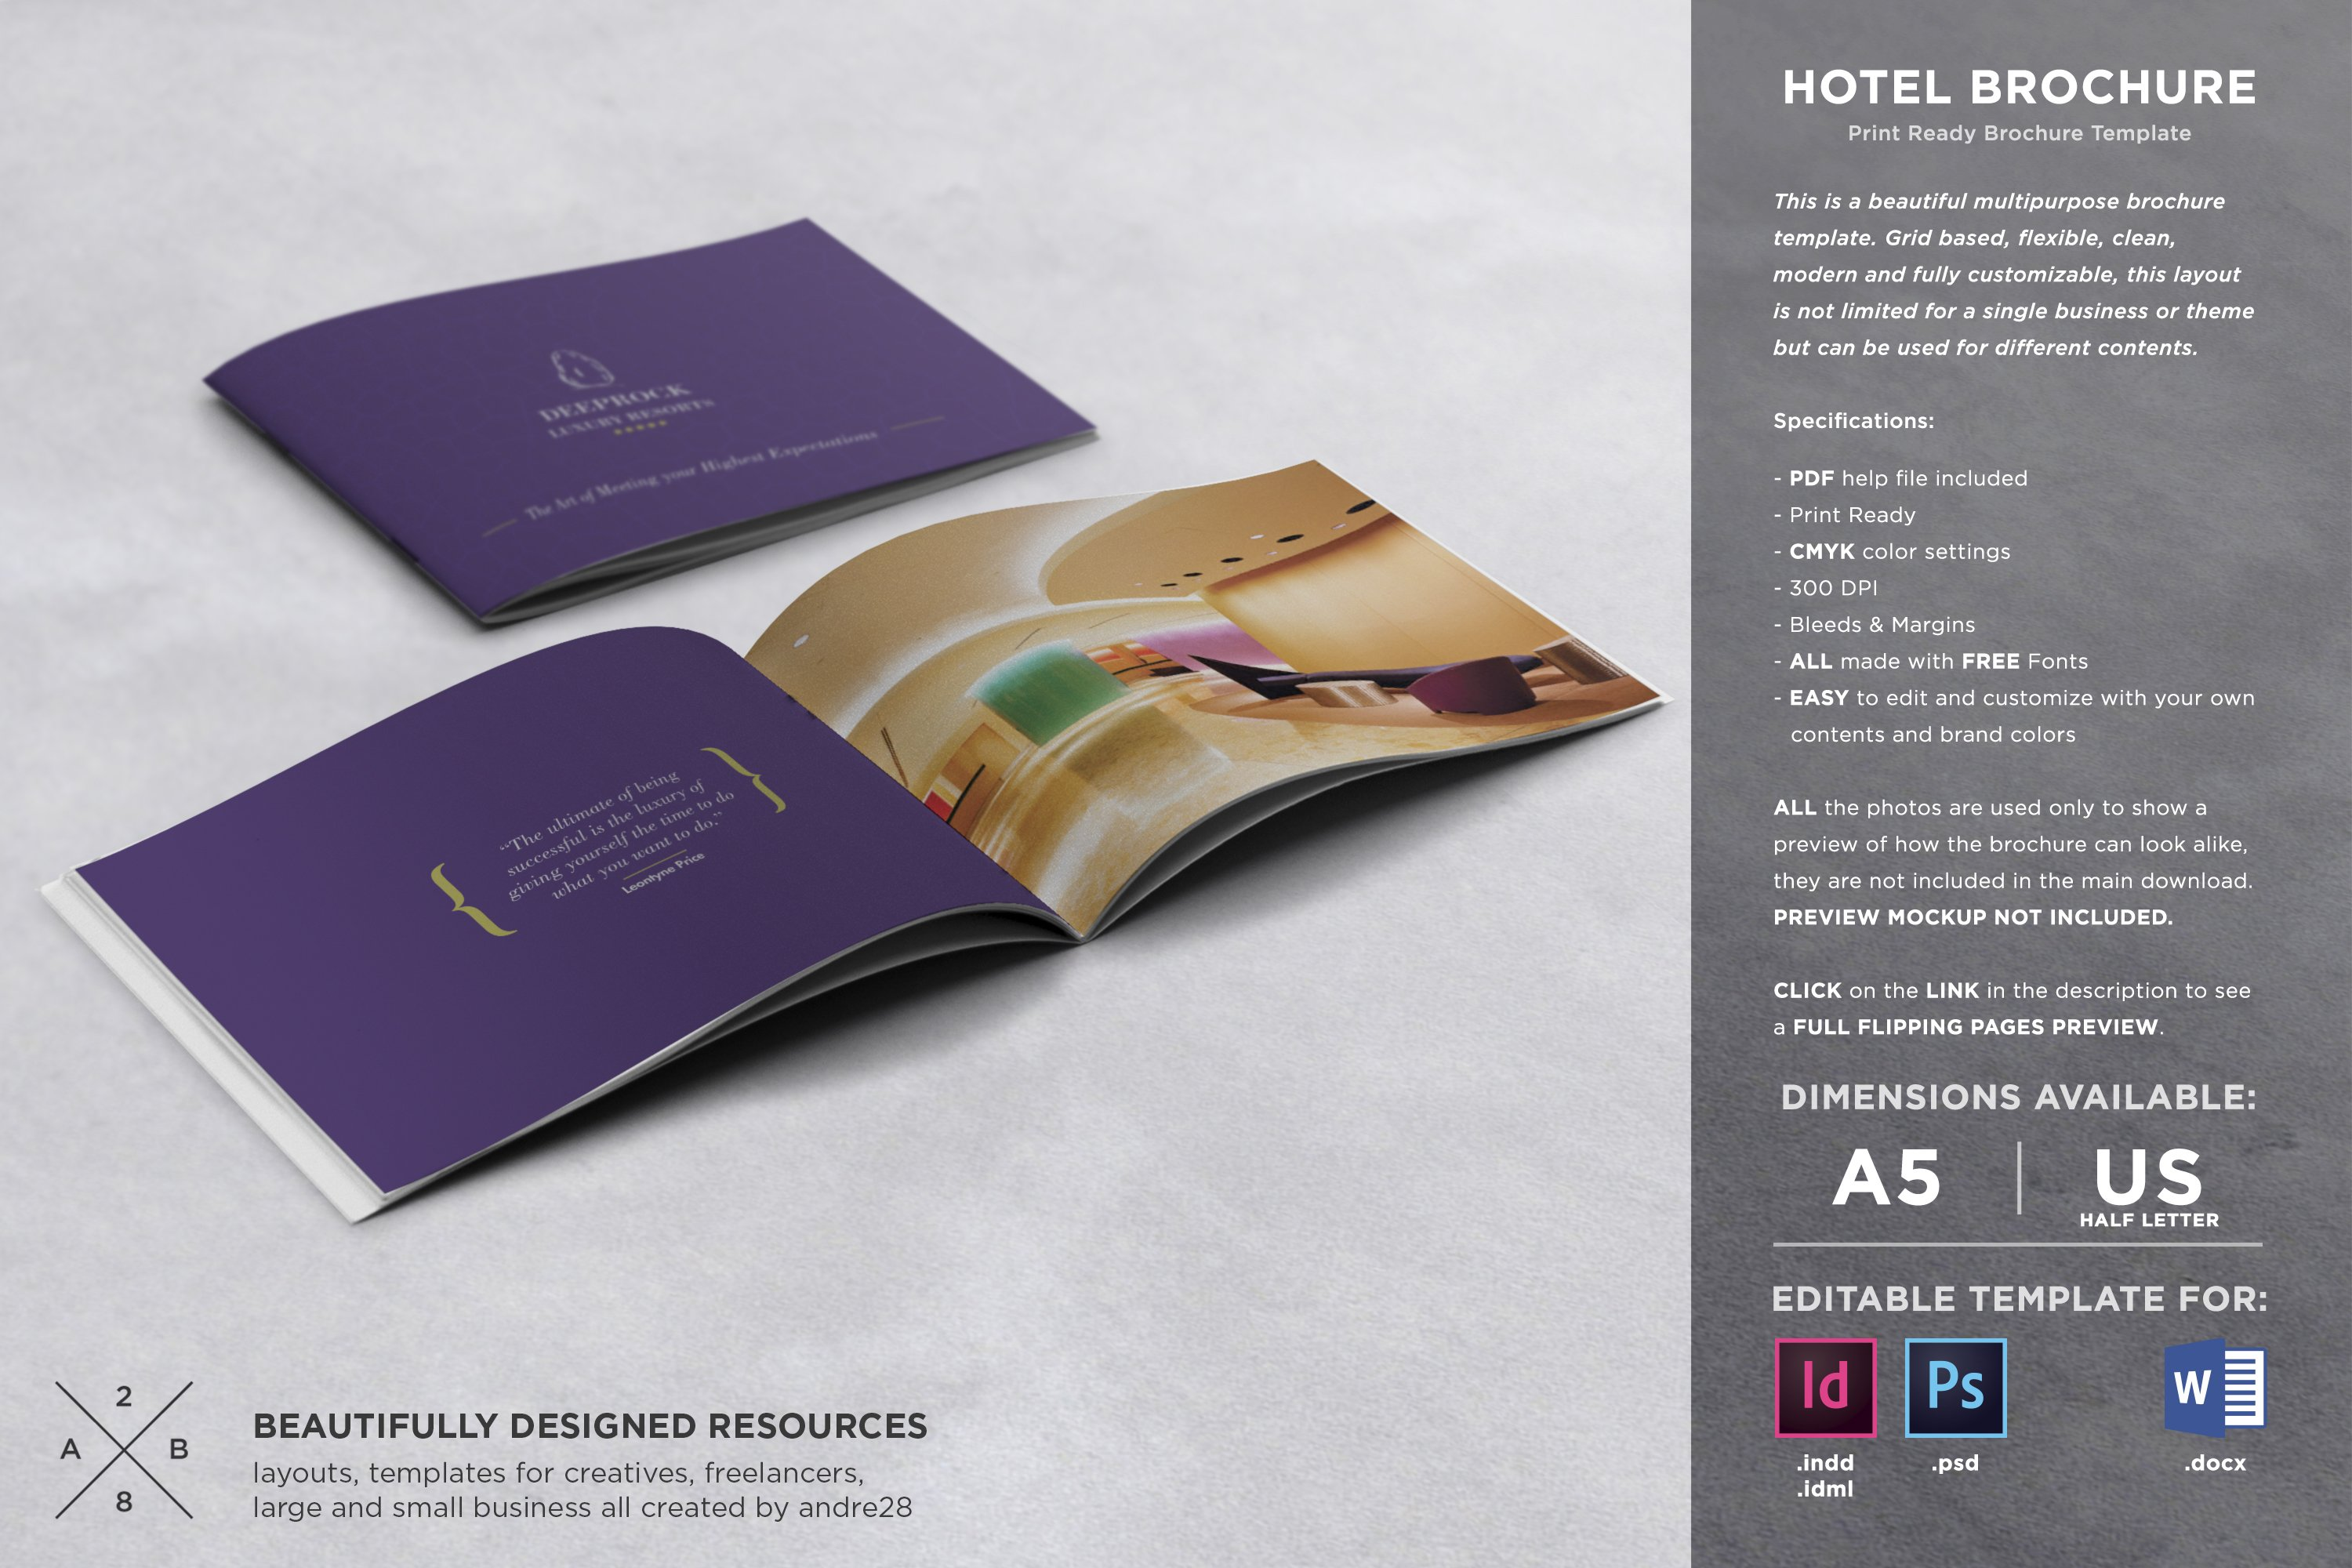 Hotel brochure template brochure templates creative market for Template brochures